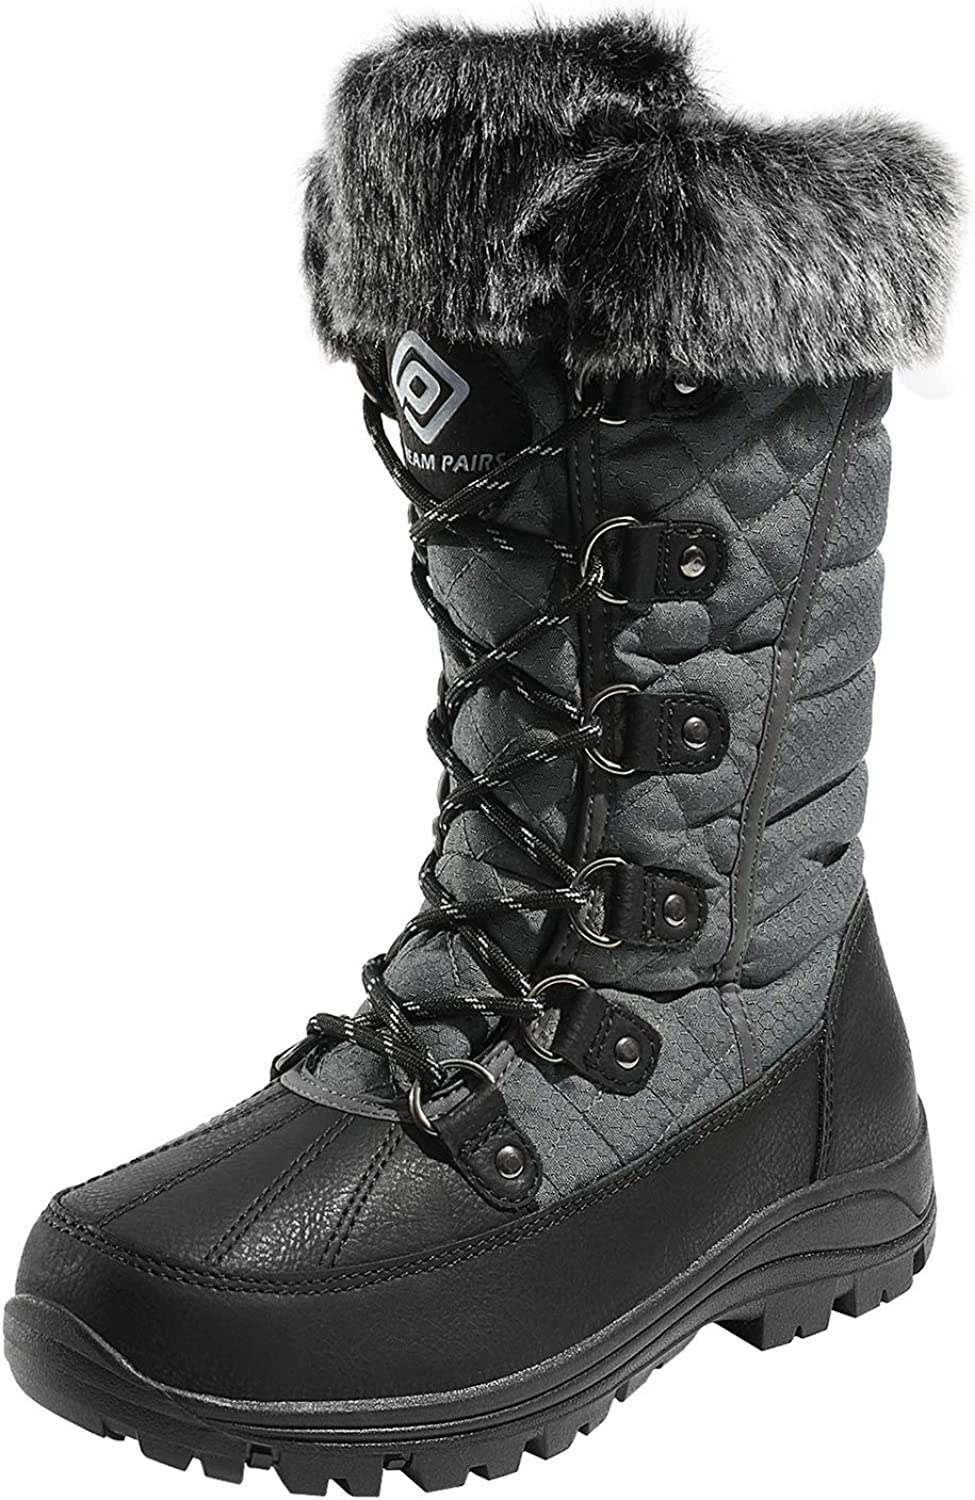 DREAM PAIRS Women's Mid Calf Lace Up Warm Faux Fur Lined Cold Weather Insulated Winter Snow Boots